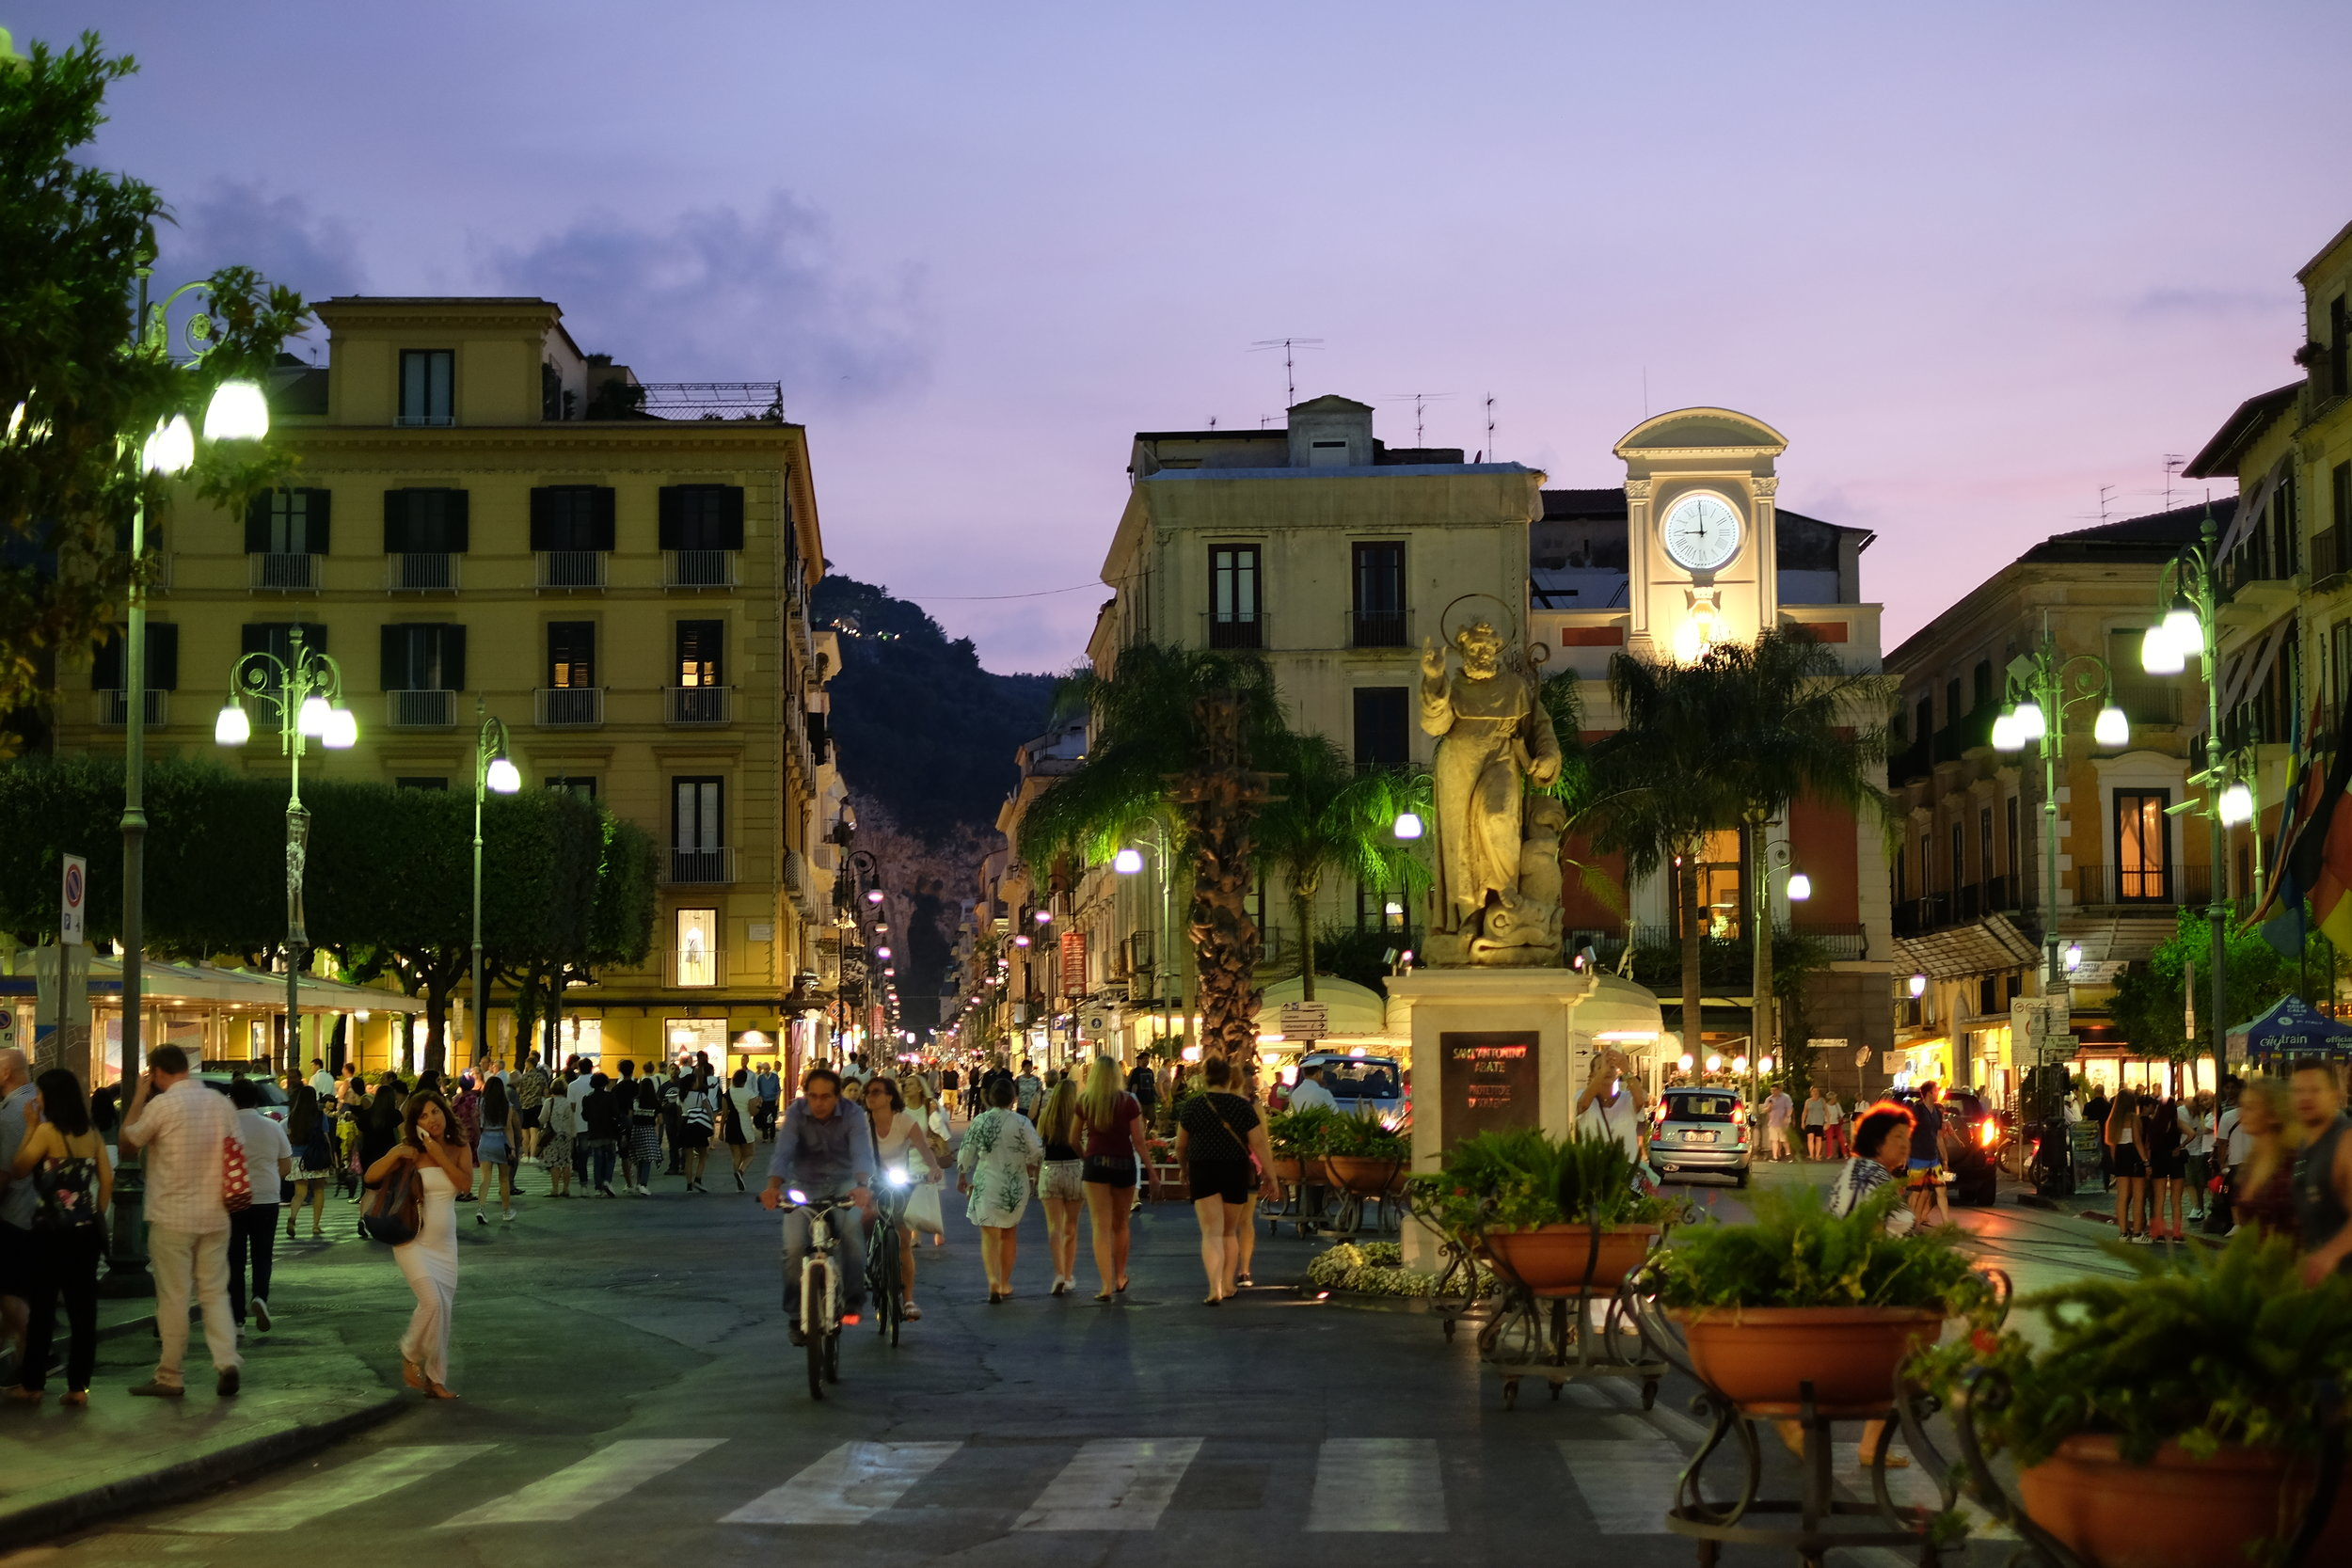 Night life in the centre of Sorrento: Piazza Tasso.